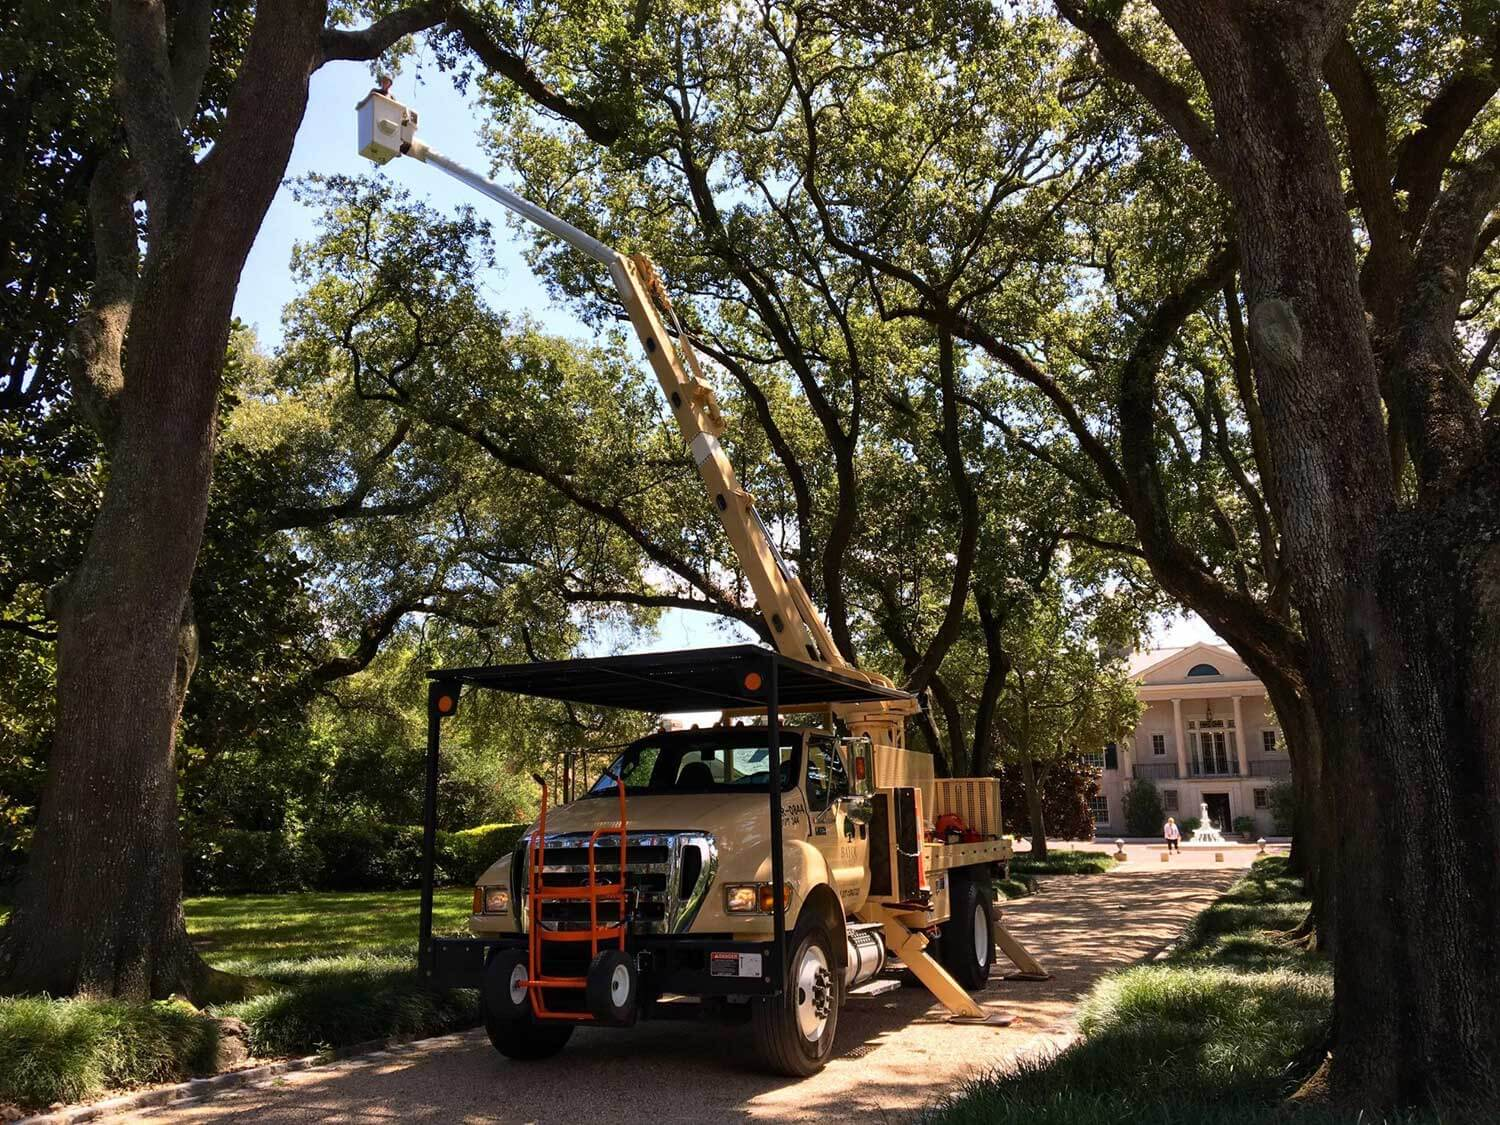 Commercial-Tree-Service-Daytona-Beach's-Best-Tree-Trimming-and-Tree-Removal